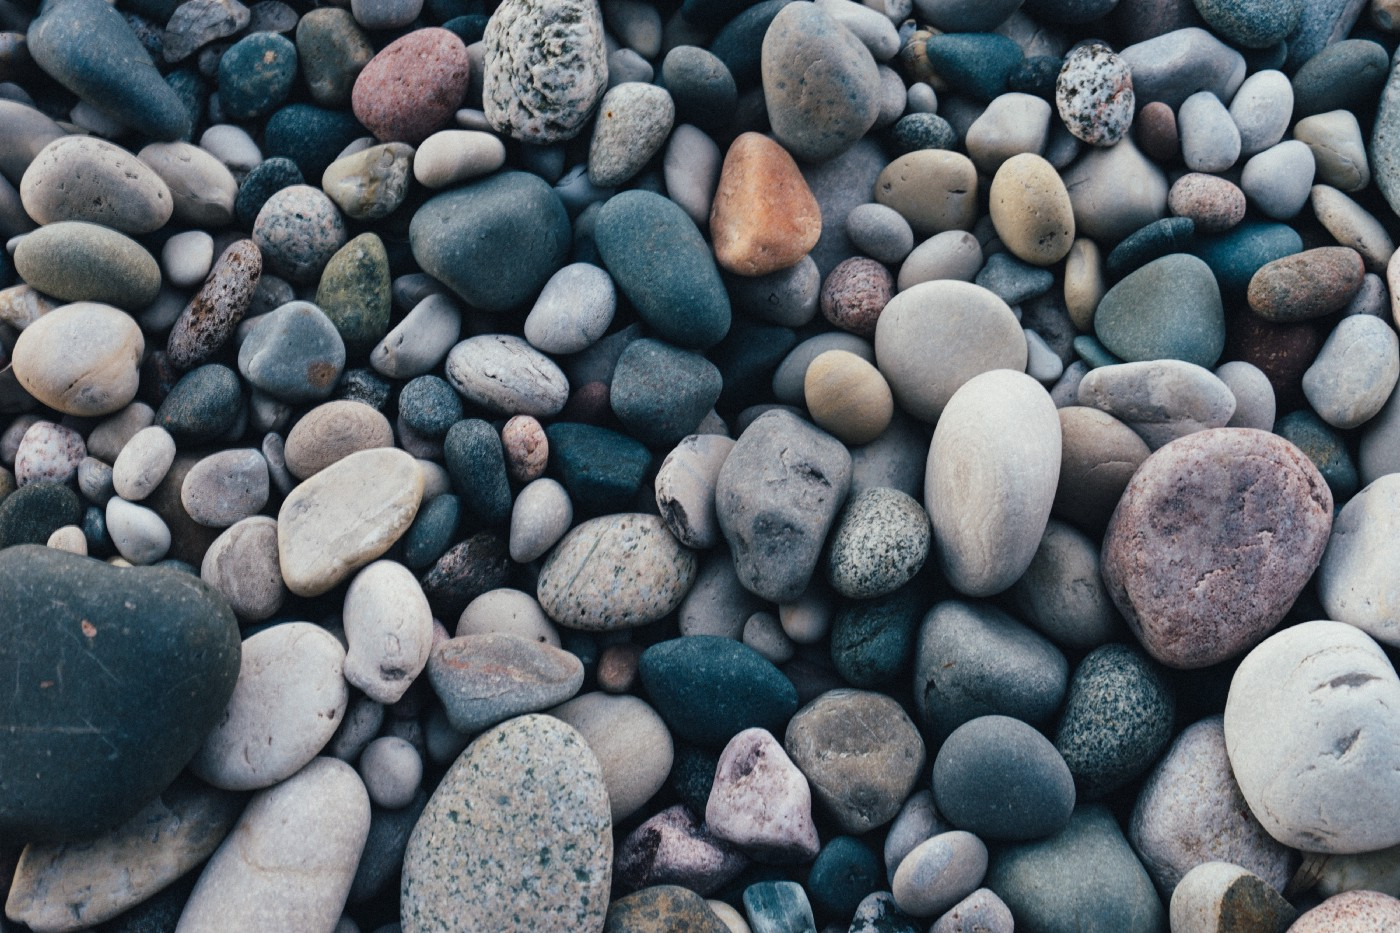 A pile of soft, rounded and speckled weathered stones and pebbles